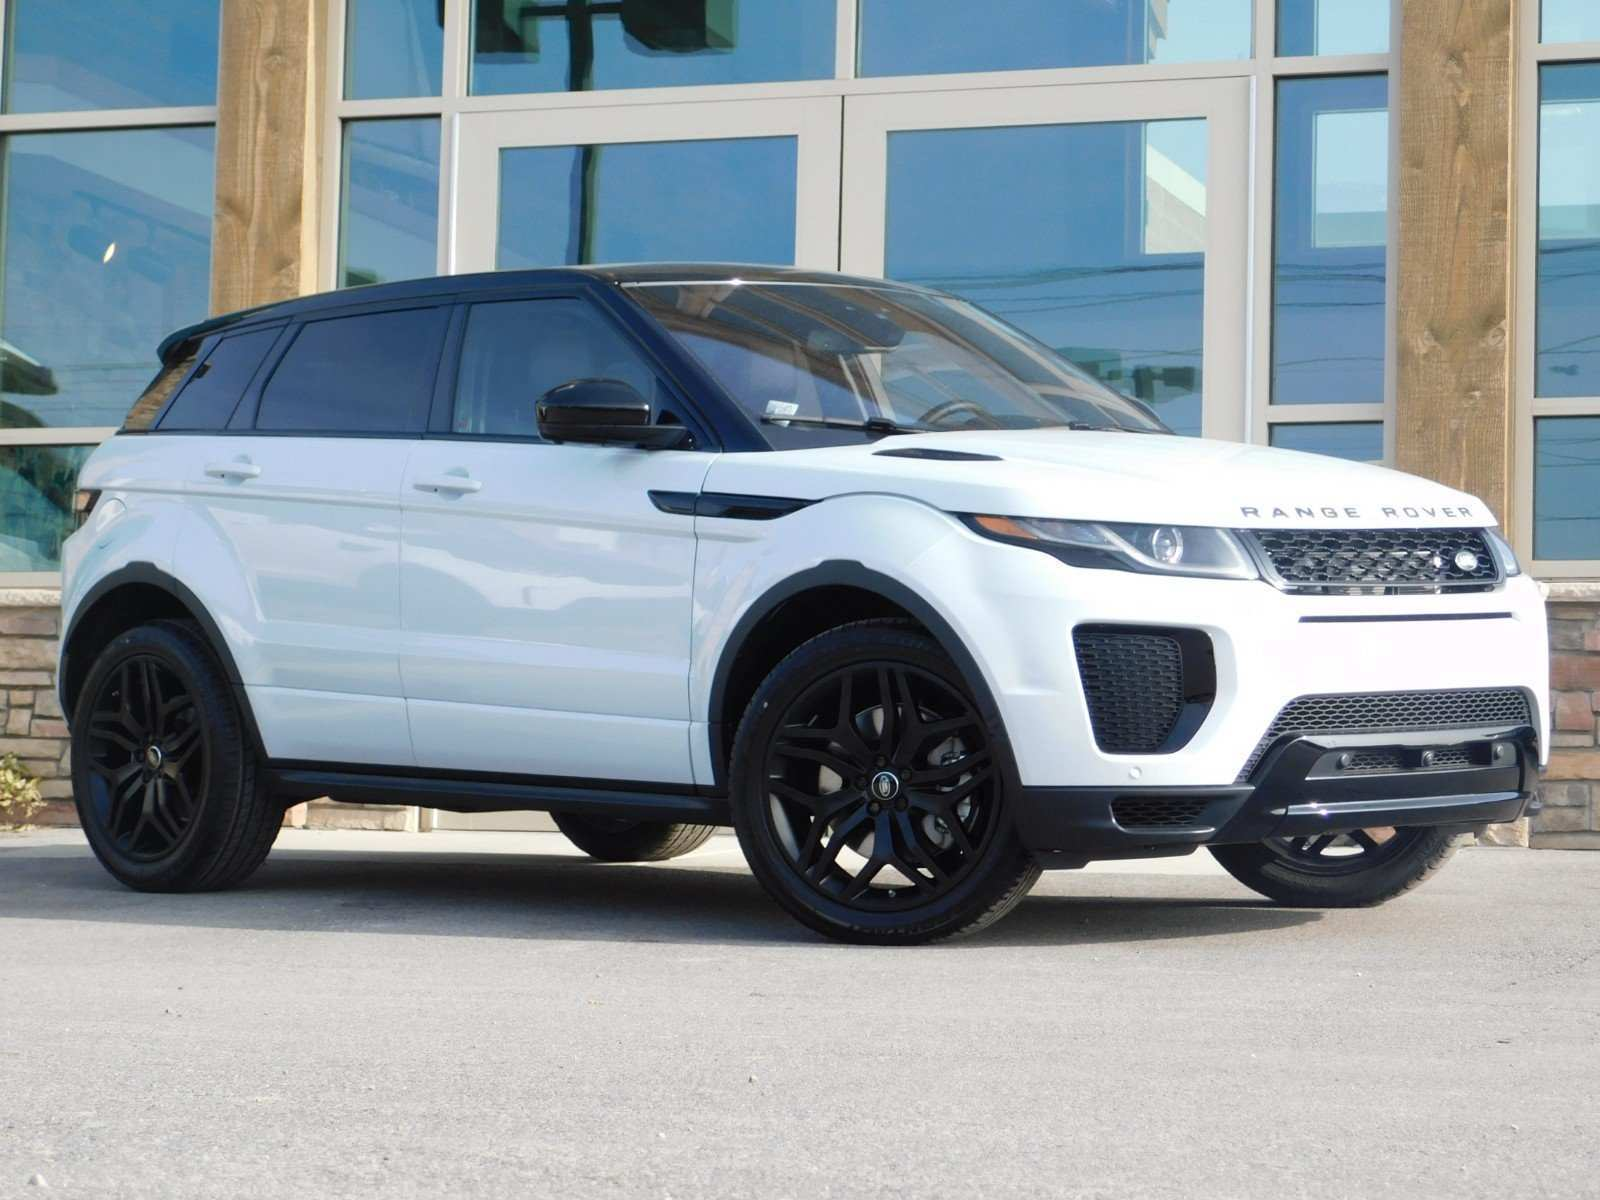 49 Best 2019 Range Rover Evoque Review And Release Date